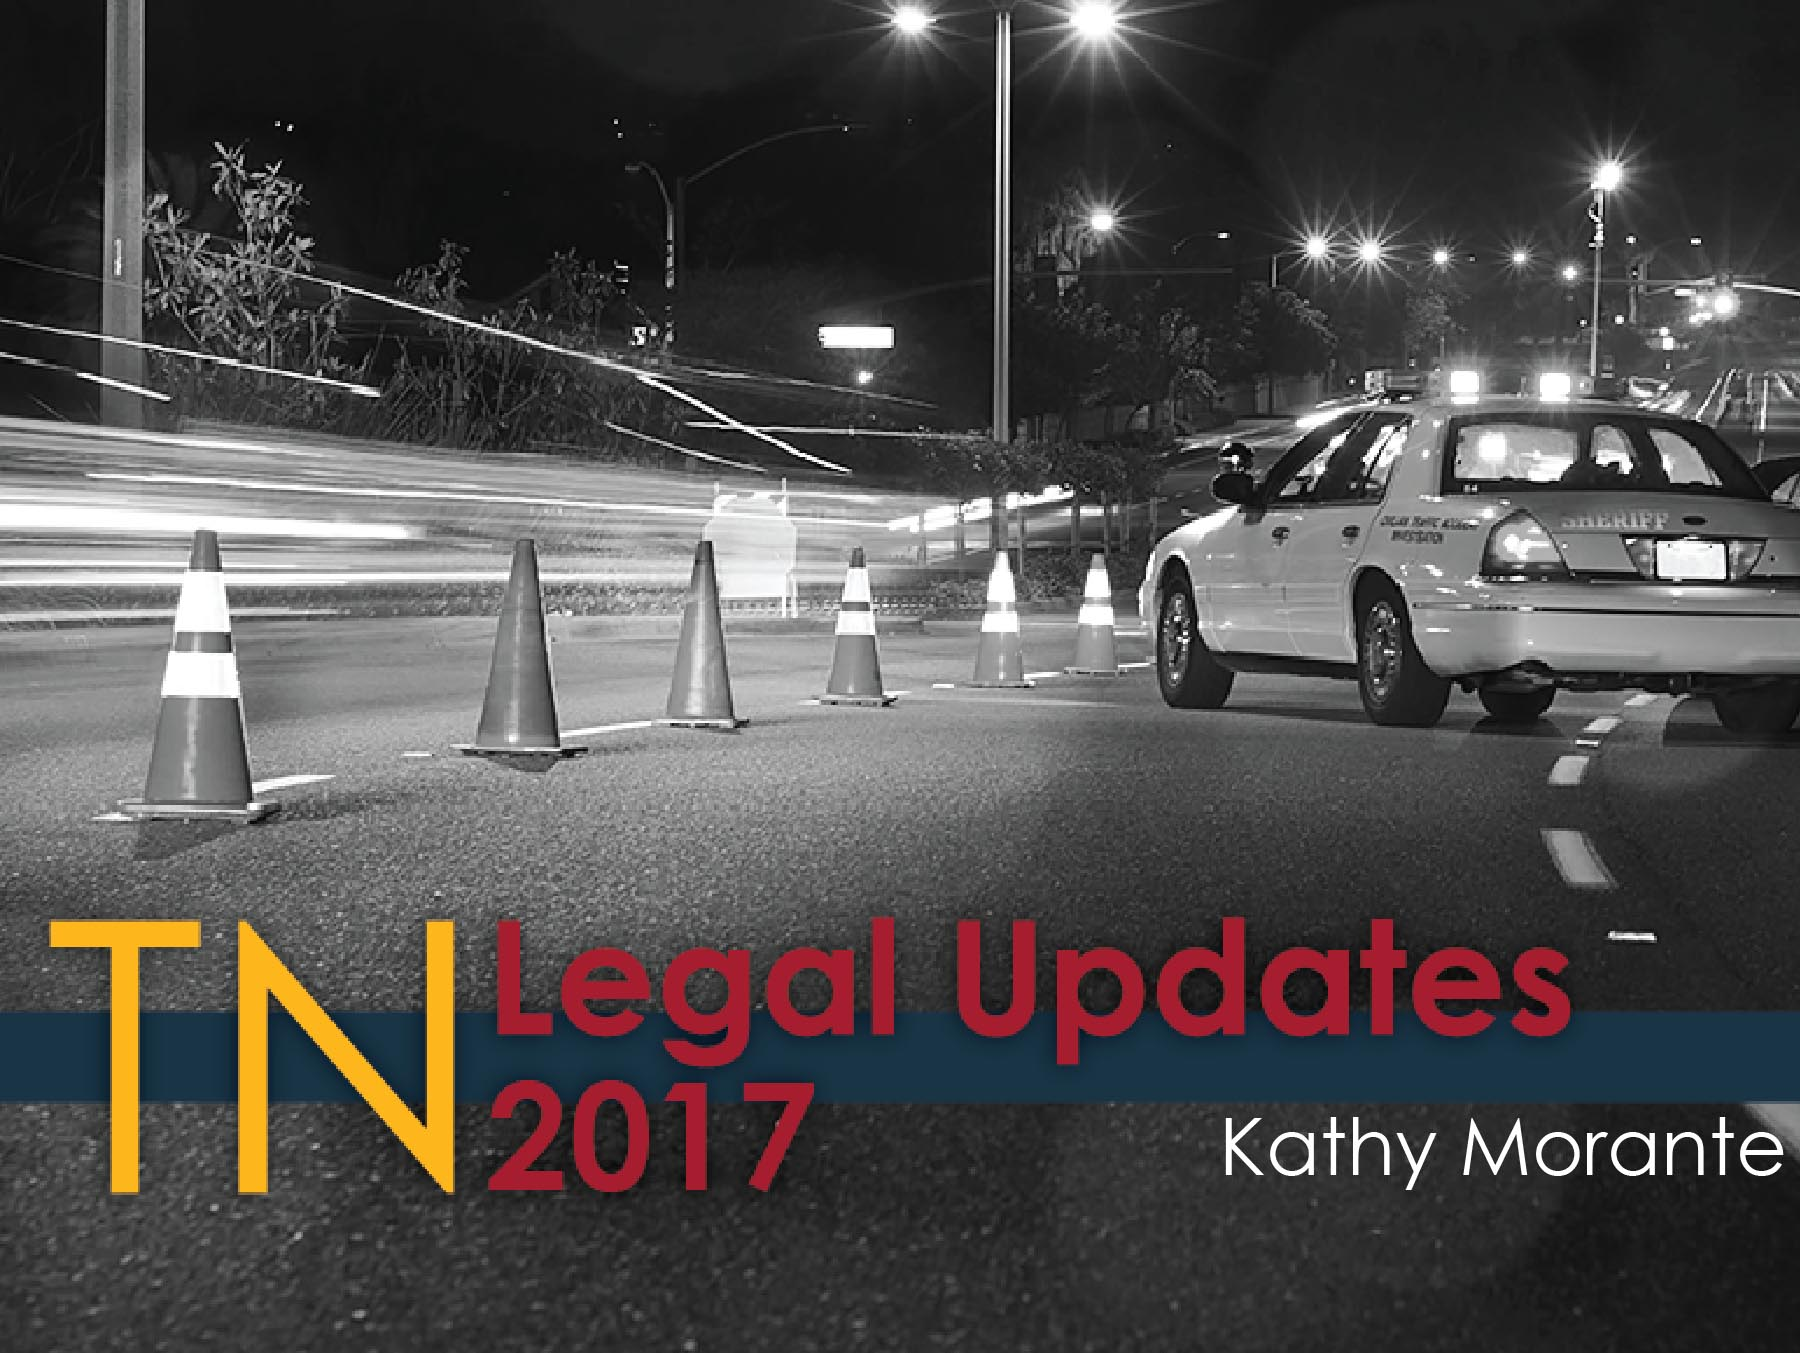 TN Legal Updates 2017